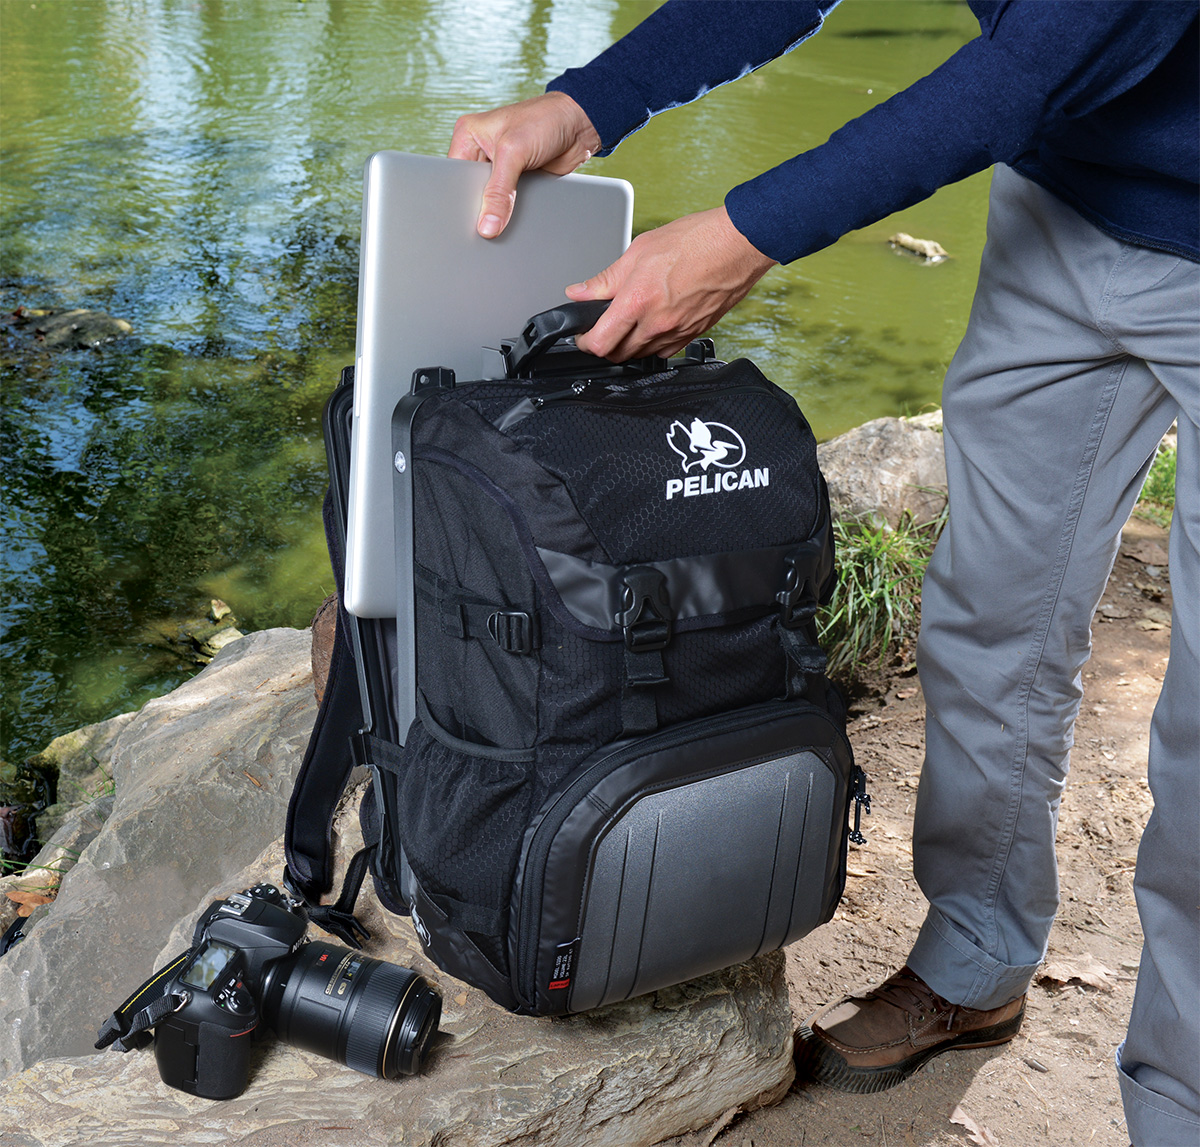 pelican peli products S130 photographer laptop camera backpack